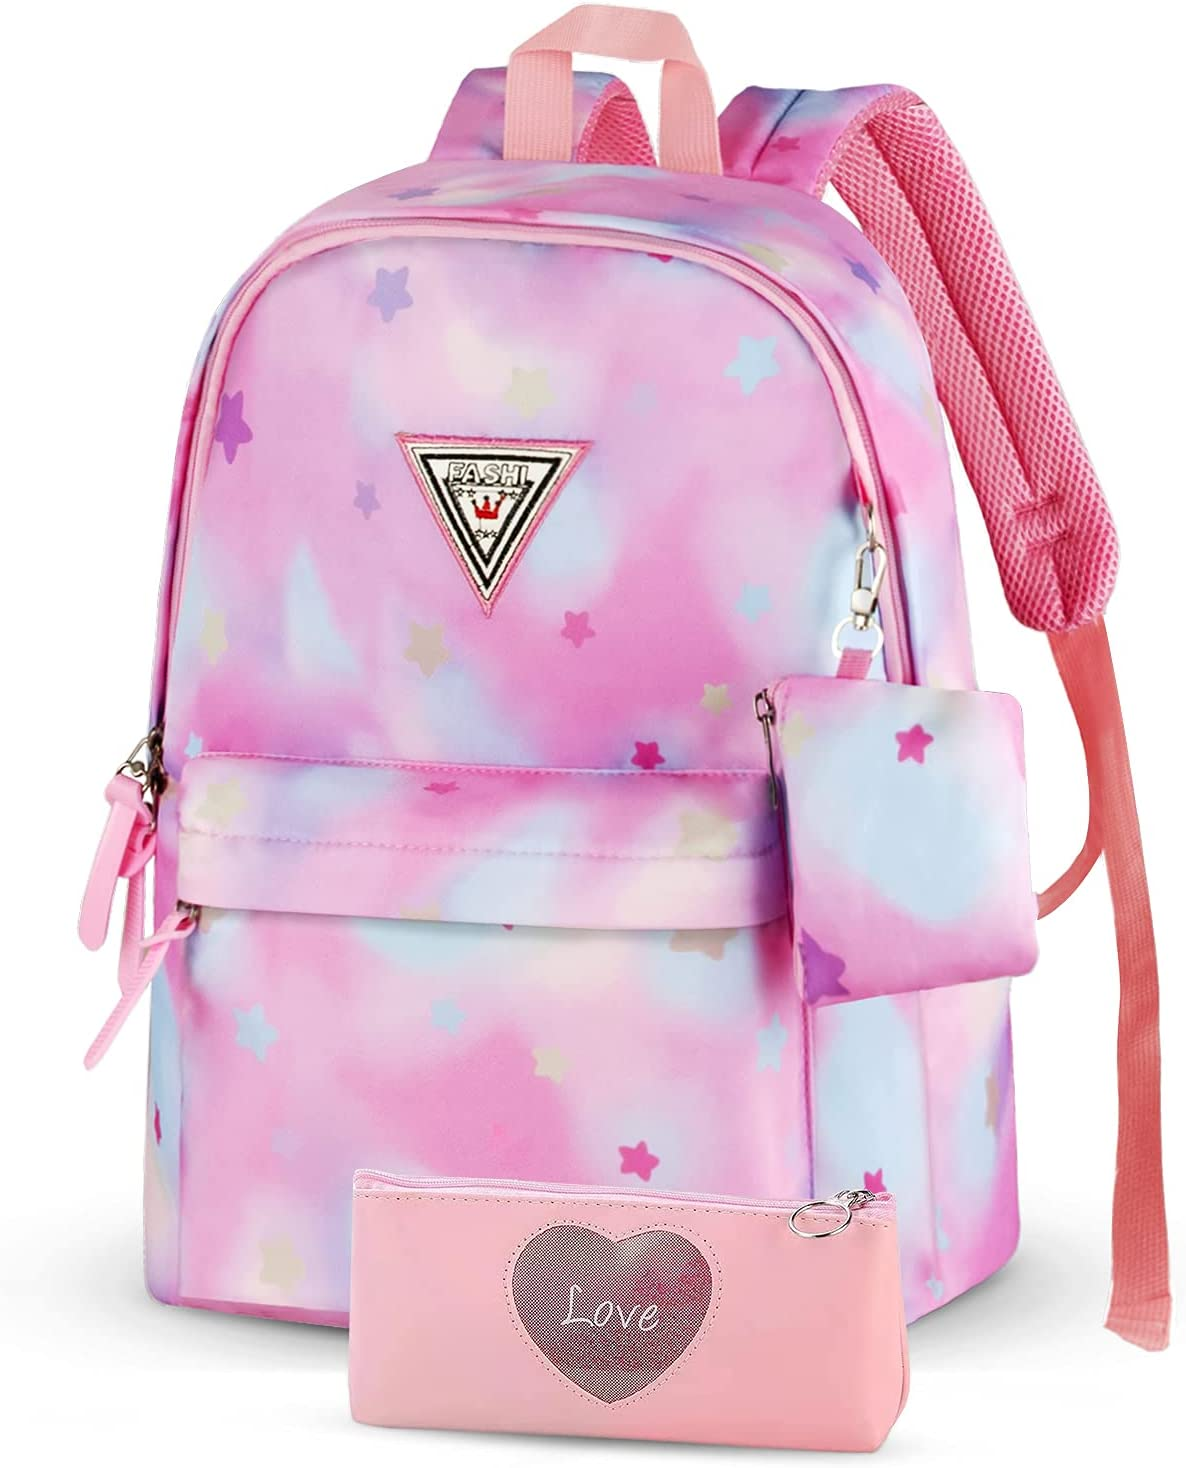 Suerico School Backpack for Chicago Mall Girls Durable Daily bargain sale Lightweight Bag